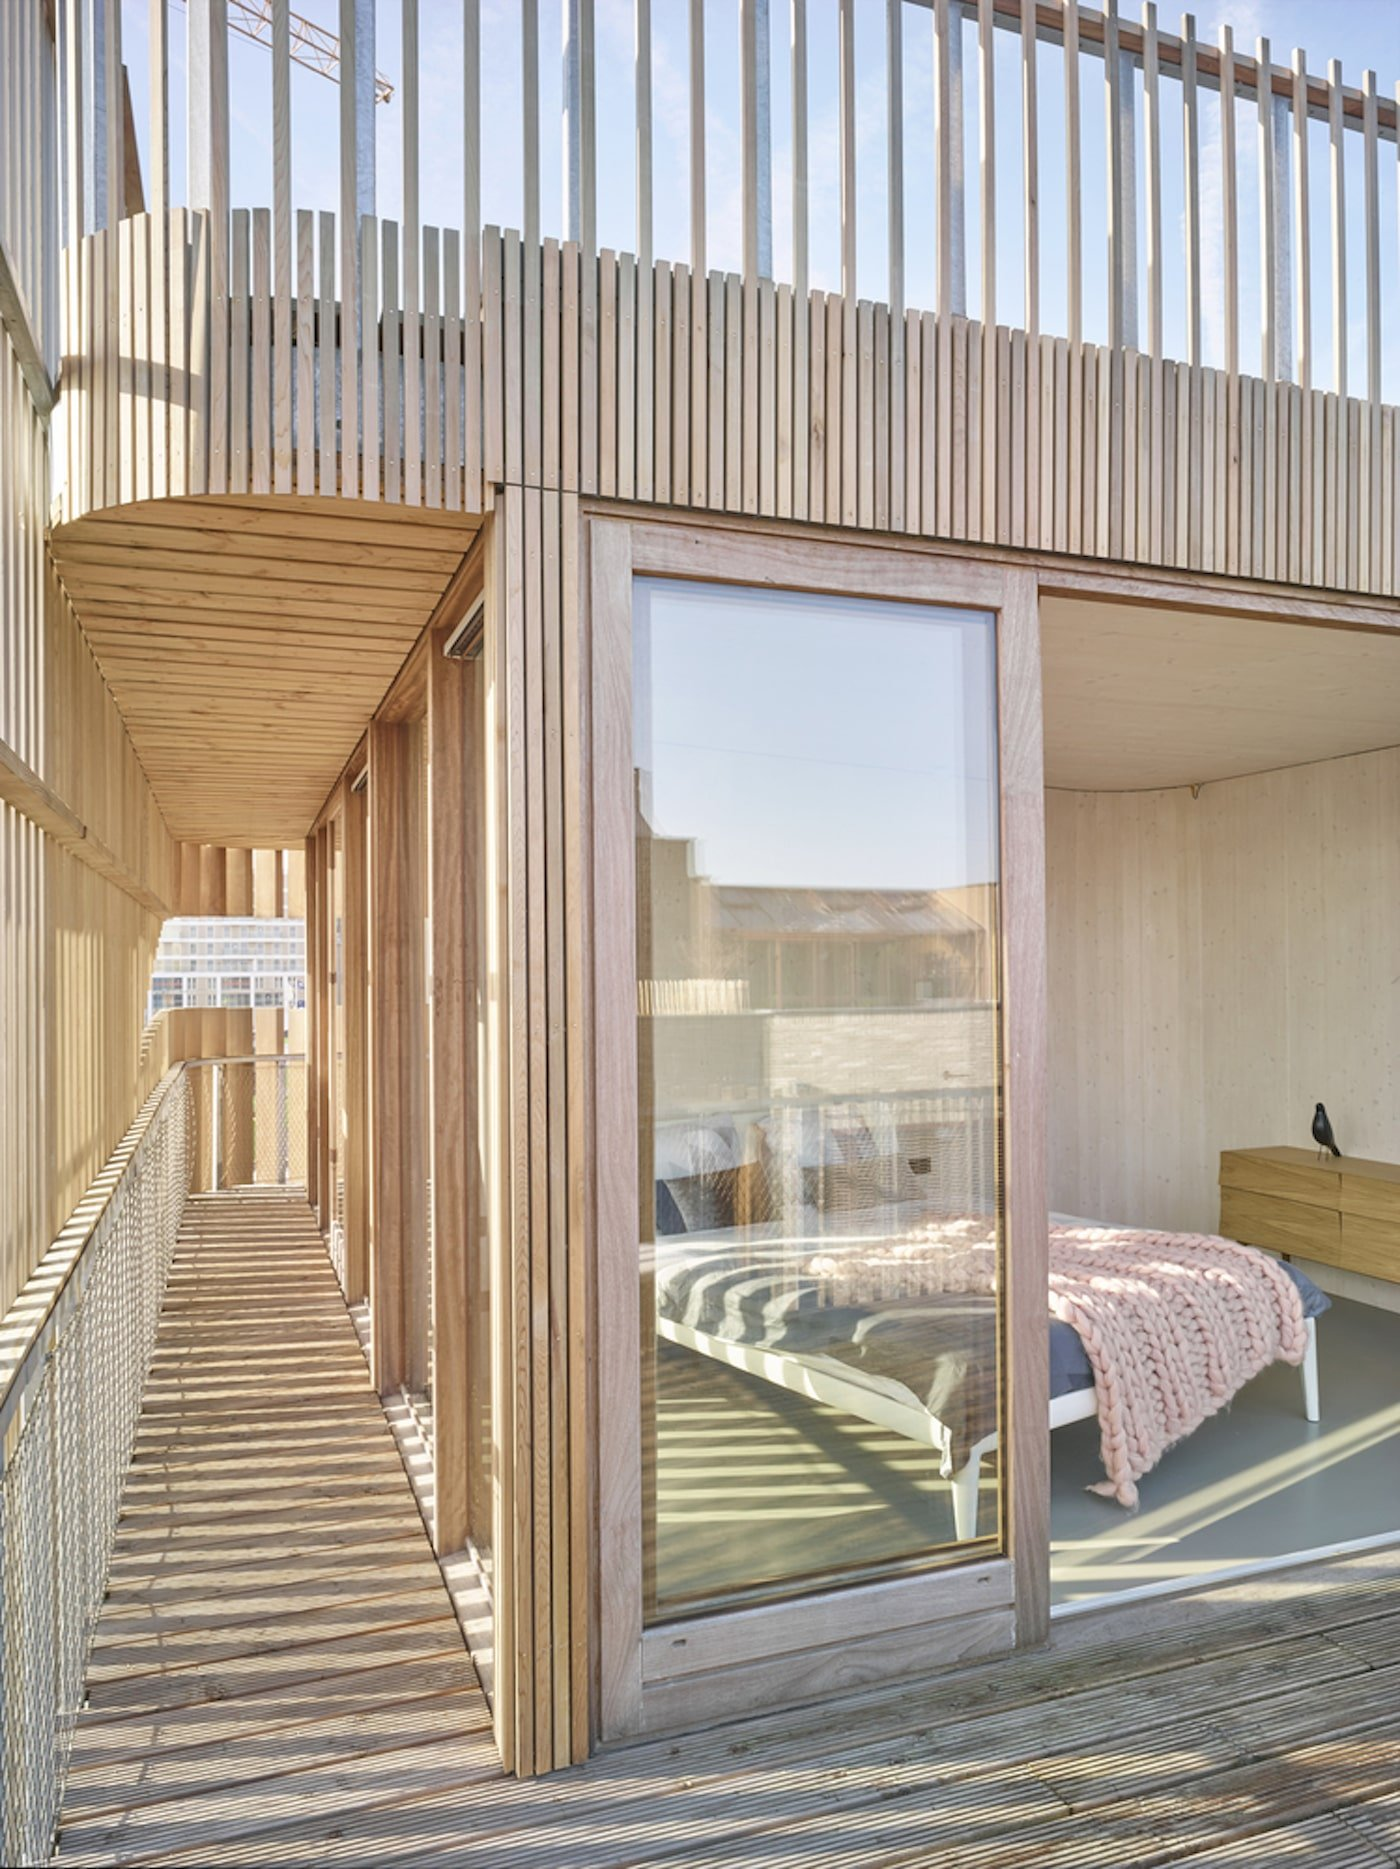 Timber clad exterior looking into bedroom